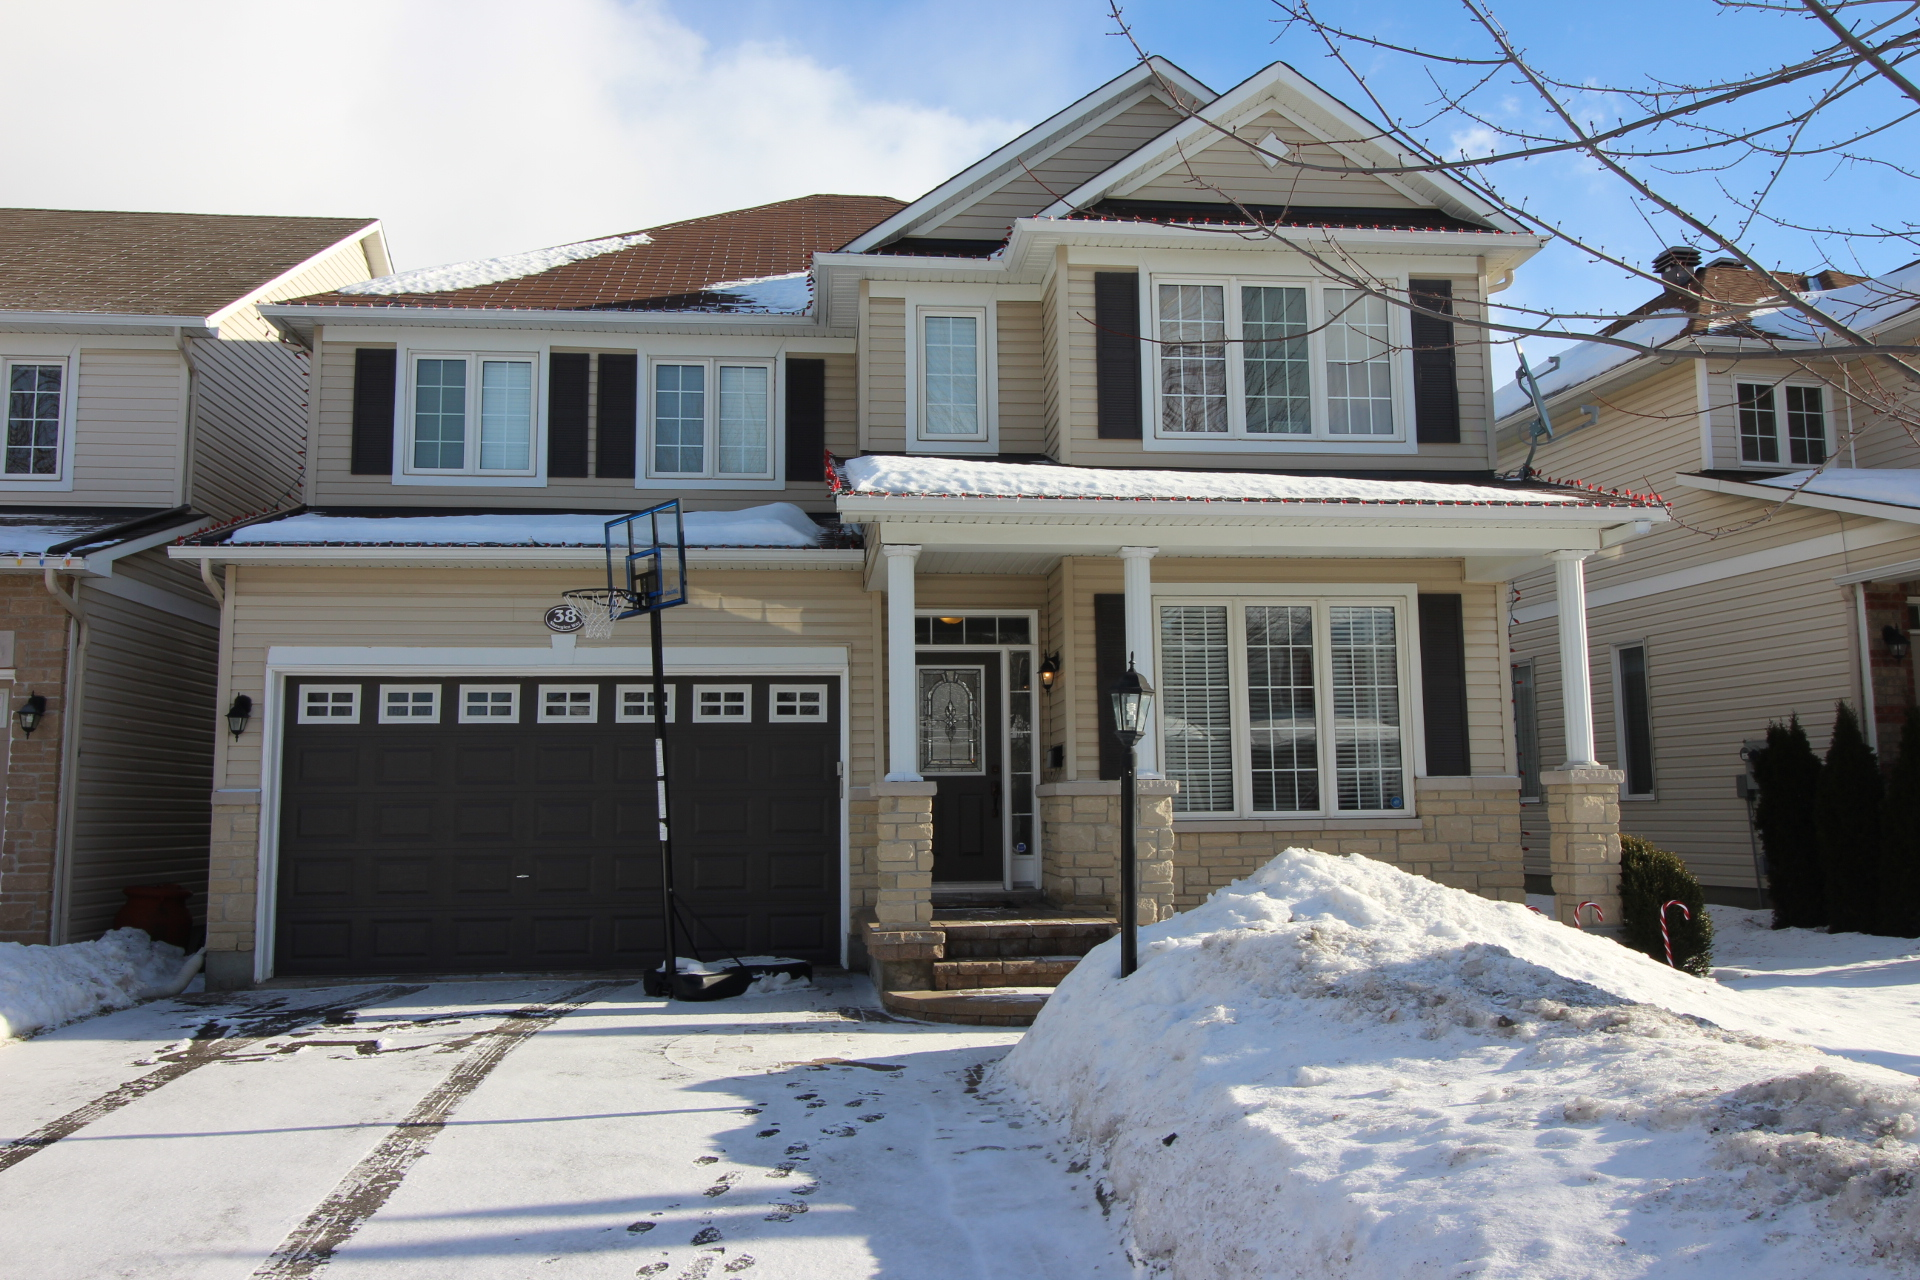 38 Shawglen Way - Stunning Detached Home in the Golf Course Community of Stonebridge!